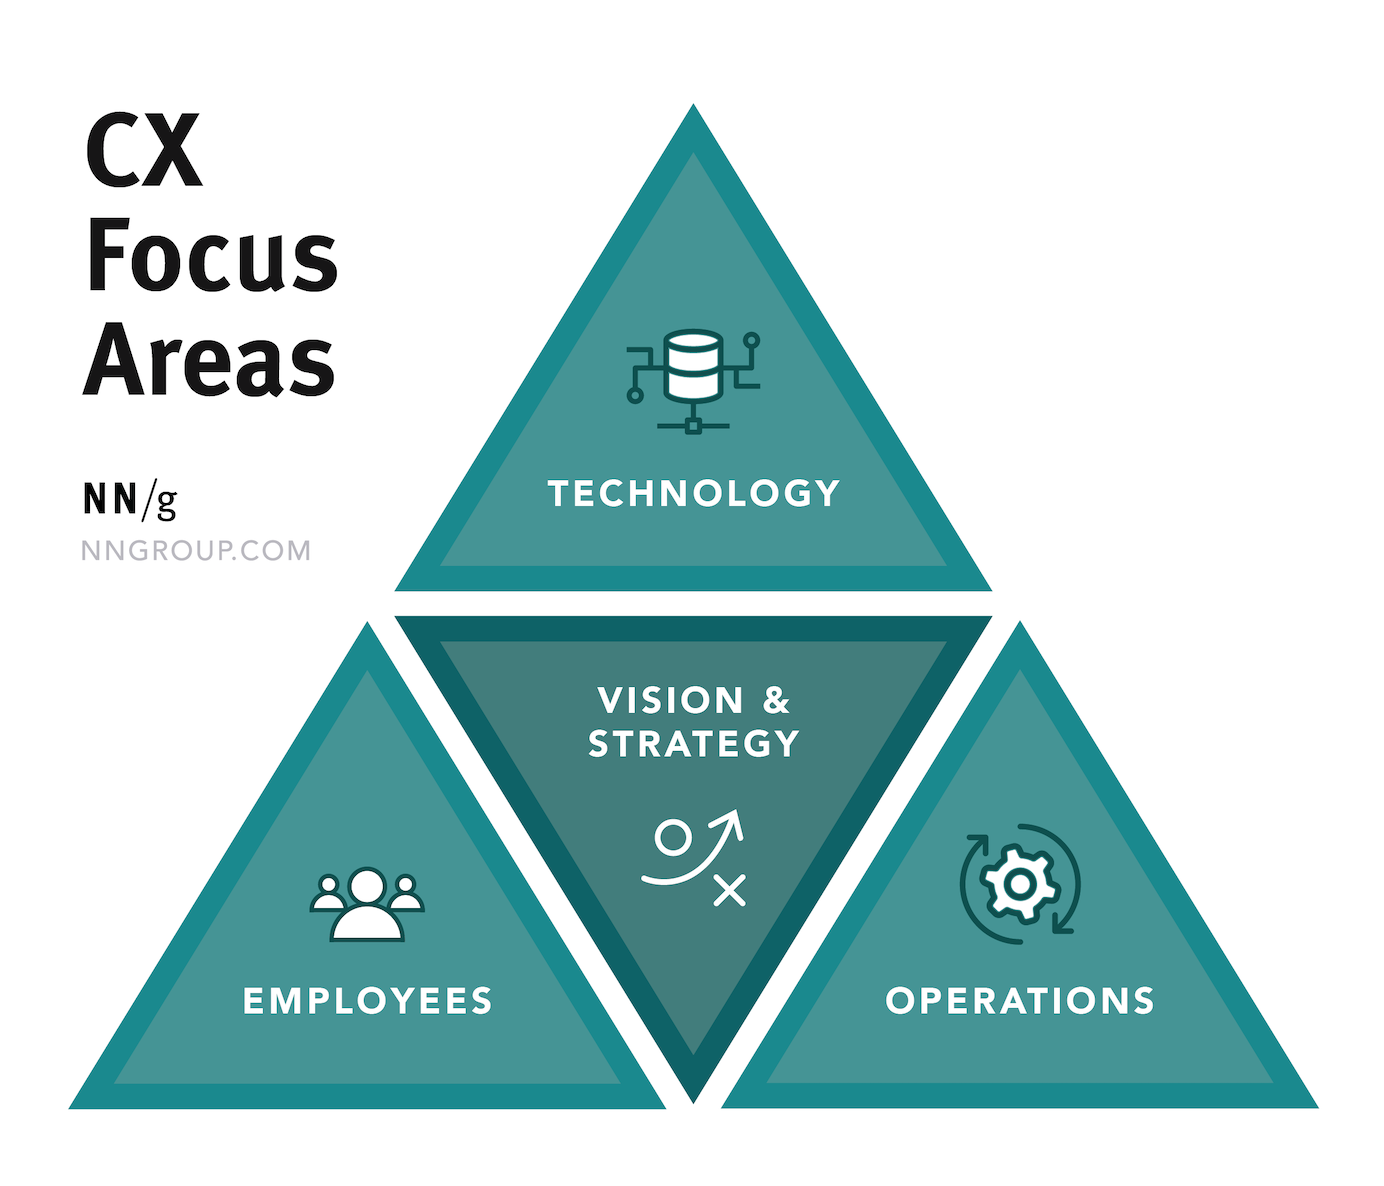 A Framework for CX Transformation How to Operationalize CX at Scale